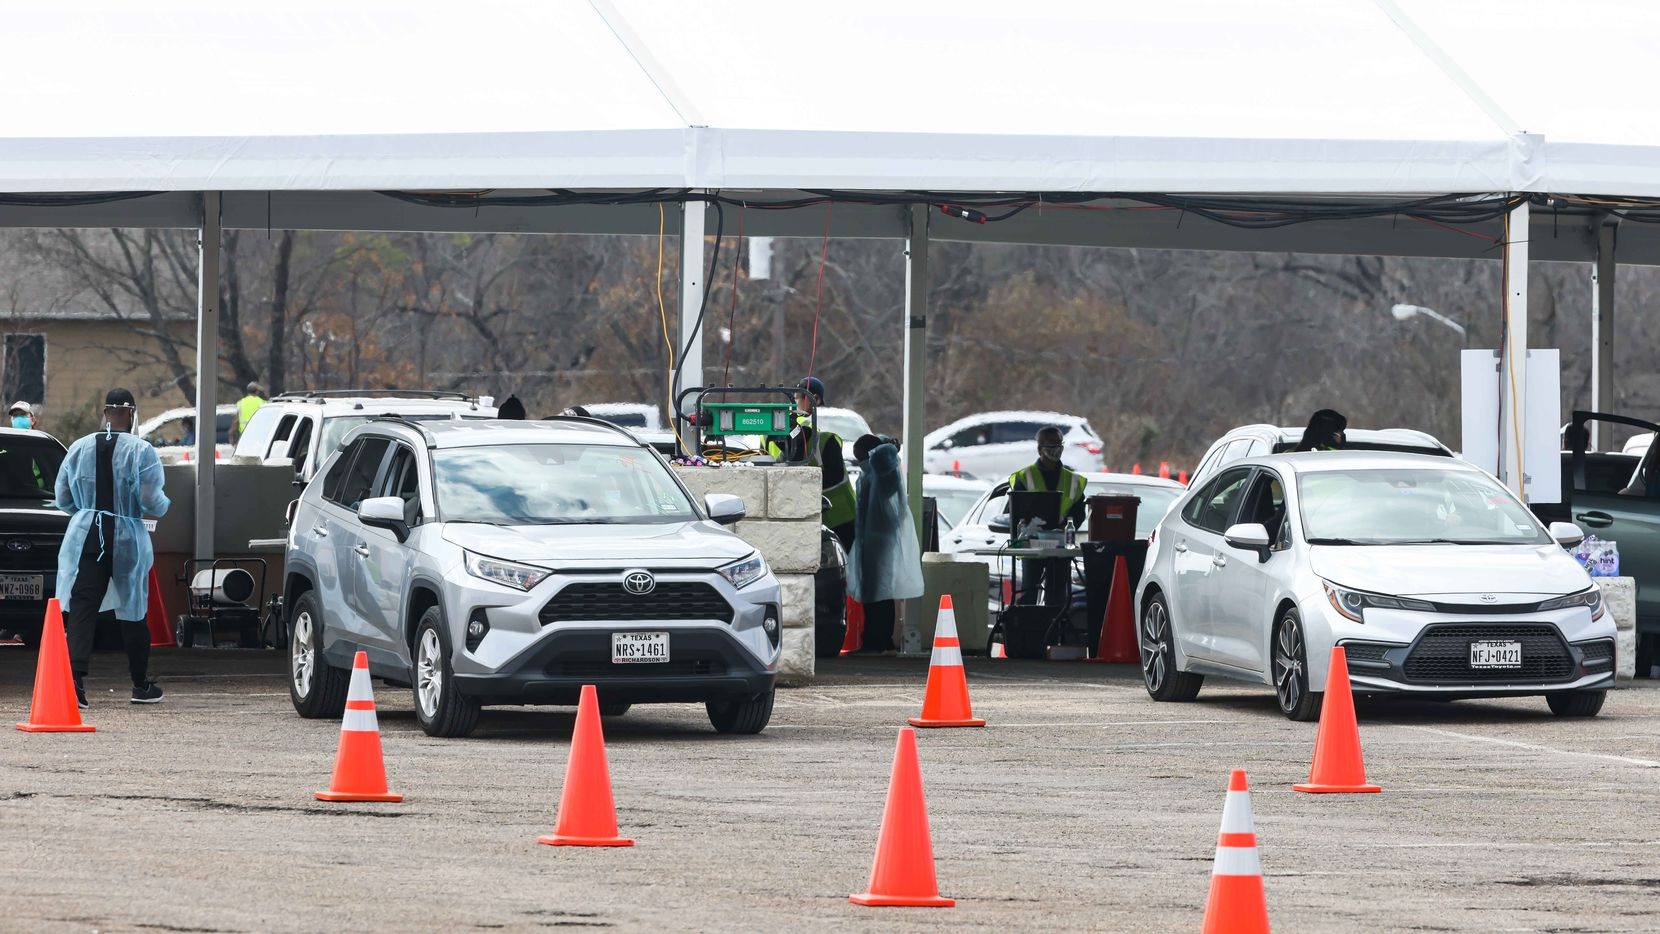 Dallas County, staff with support from FEMA and Army medics, administer doses of Pfizer, Moderna and Johnson & Johnson COVID-19 vaccines to patients by appointment at Fair Park in Dallas on March 5, 2021.